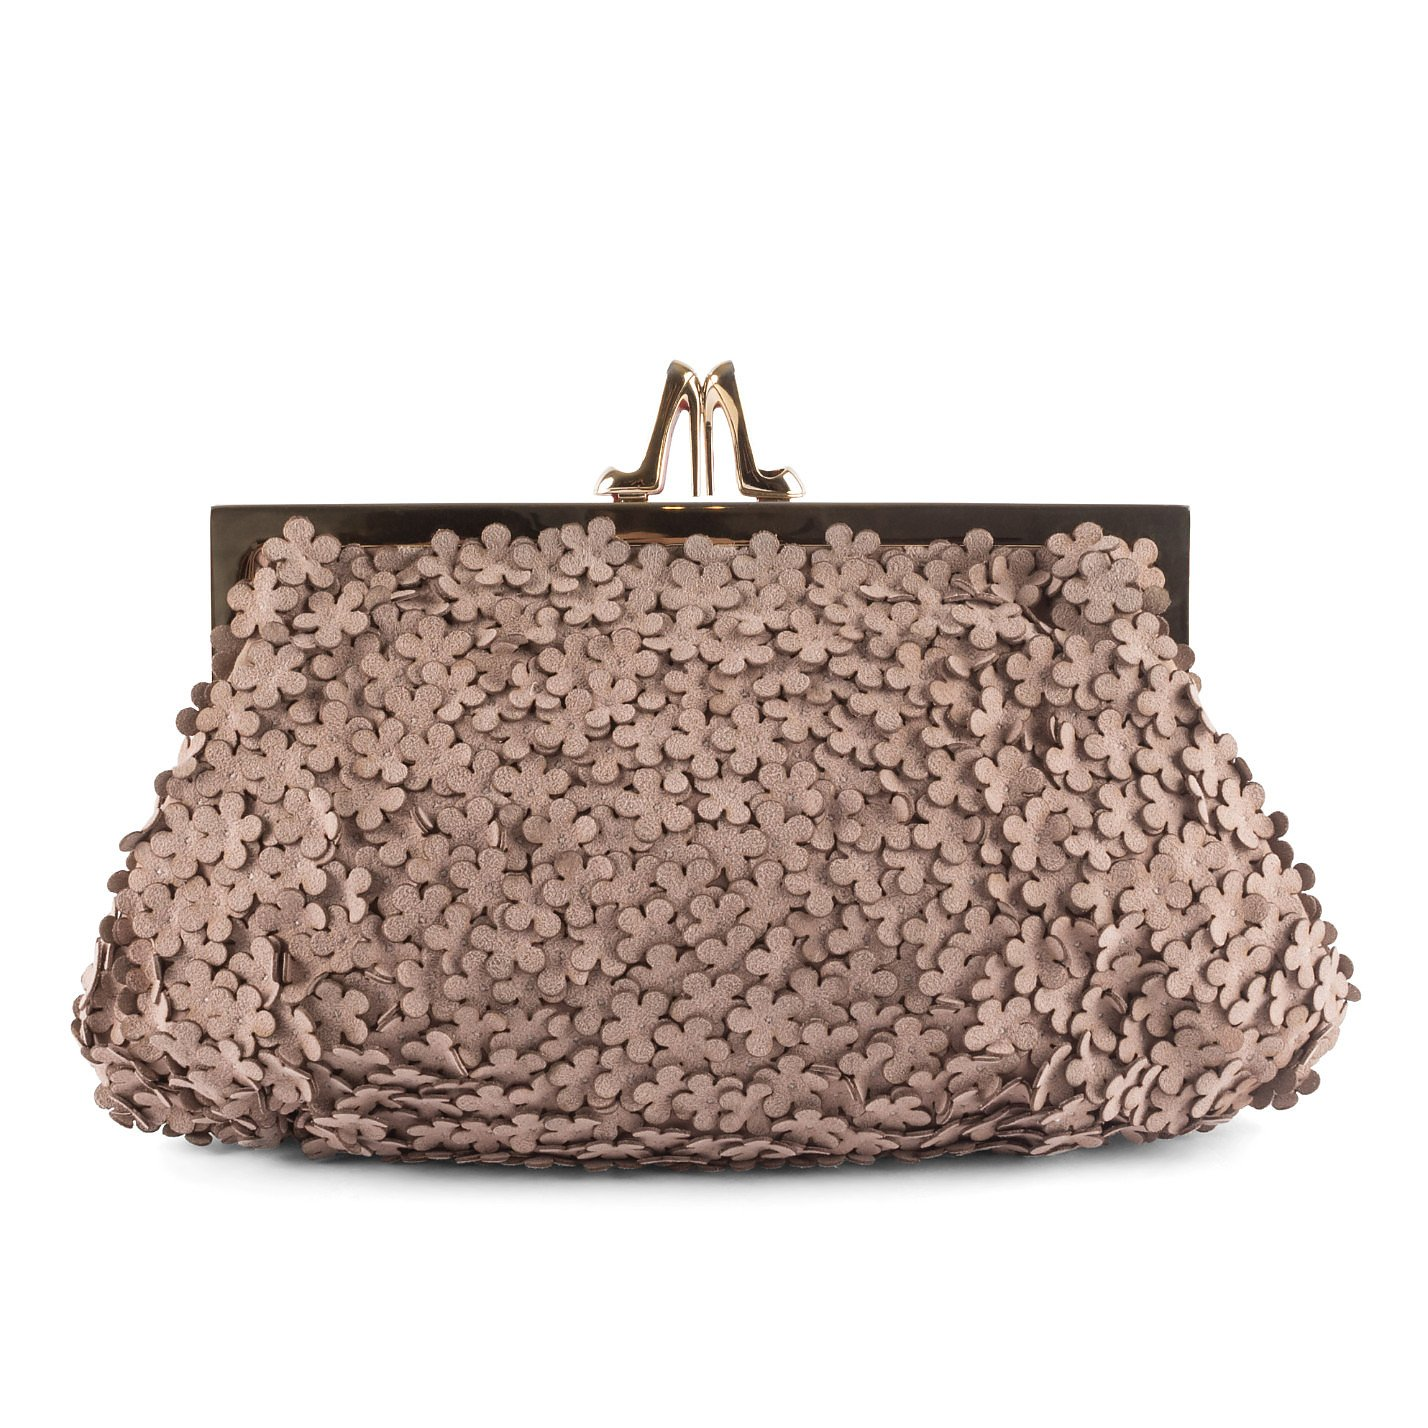 Christian Louboutin Suede Floral Clutch Bag